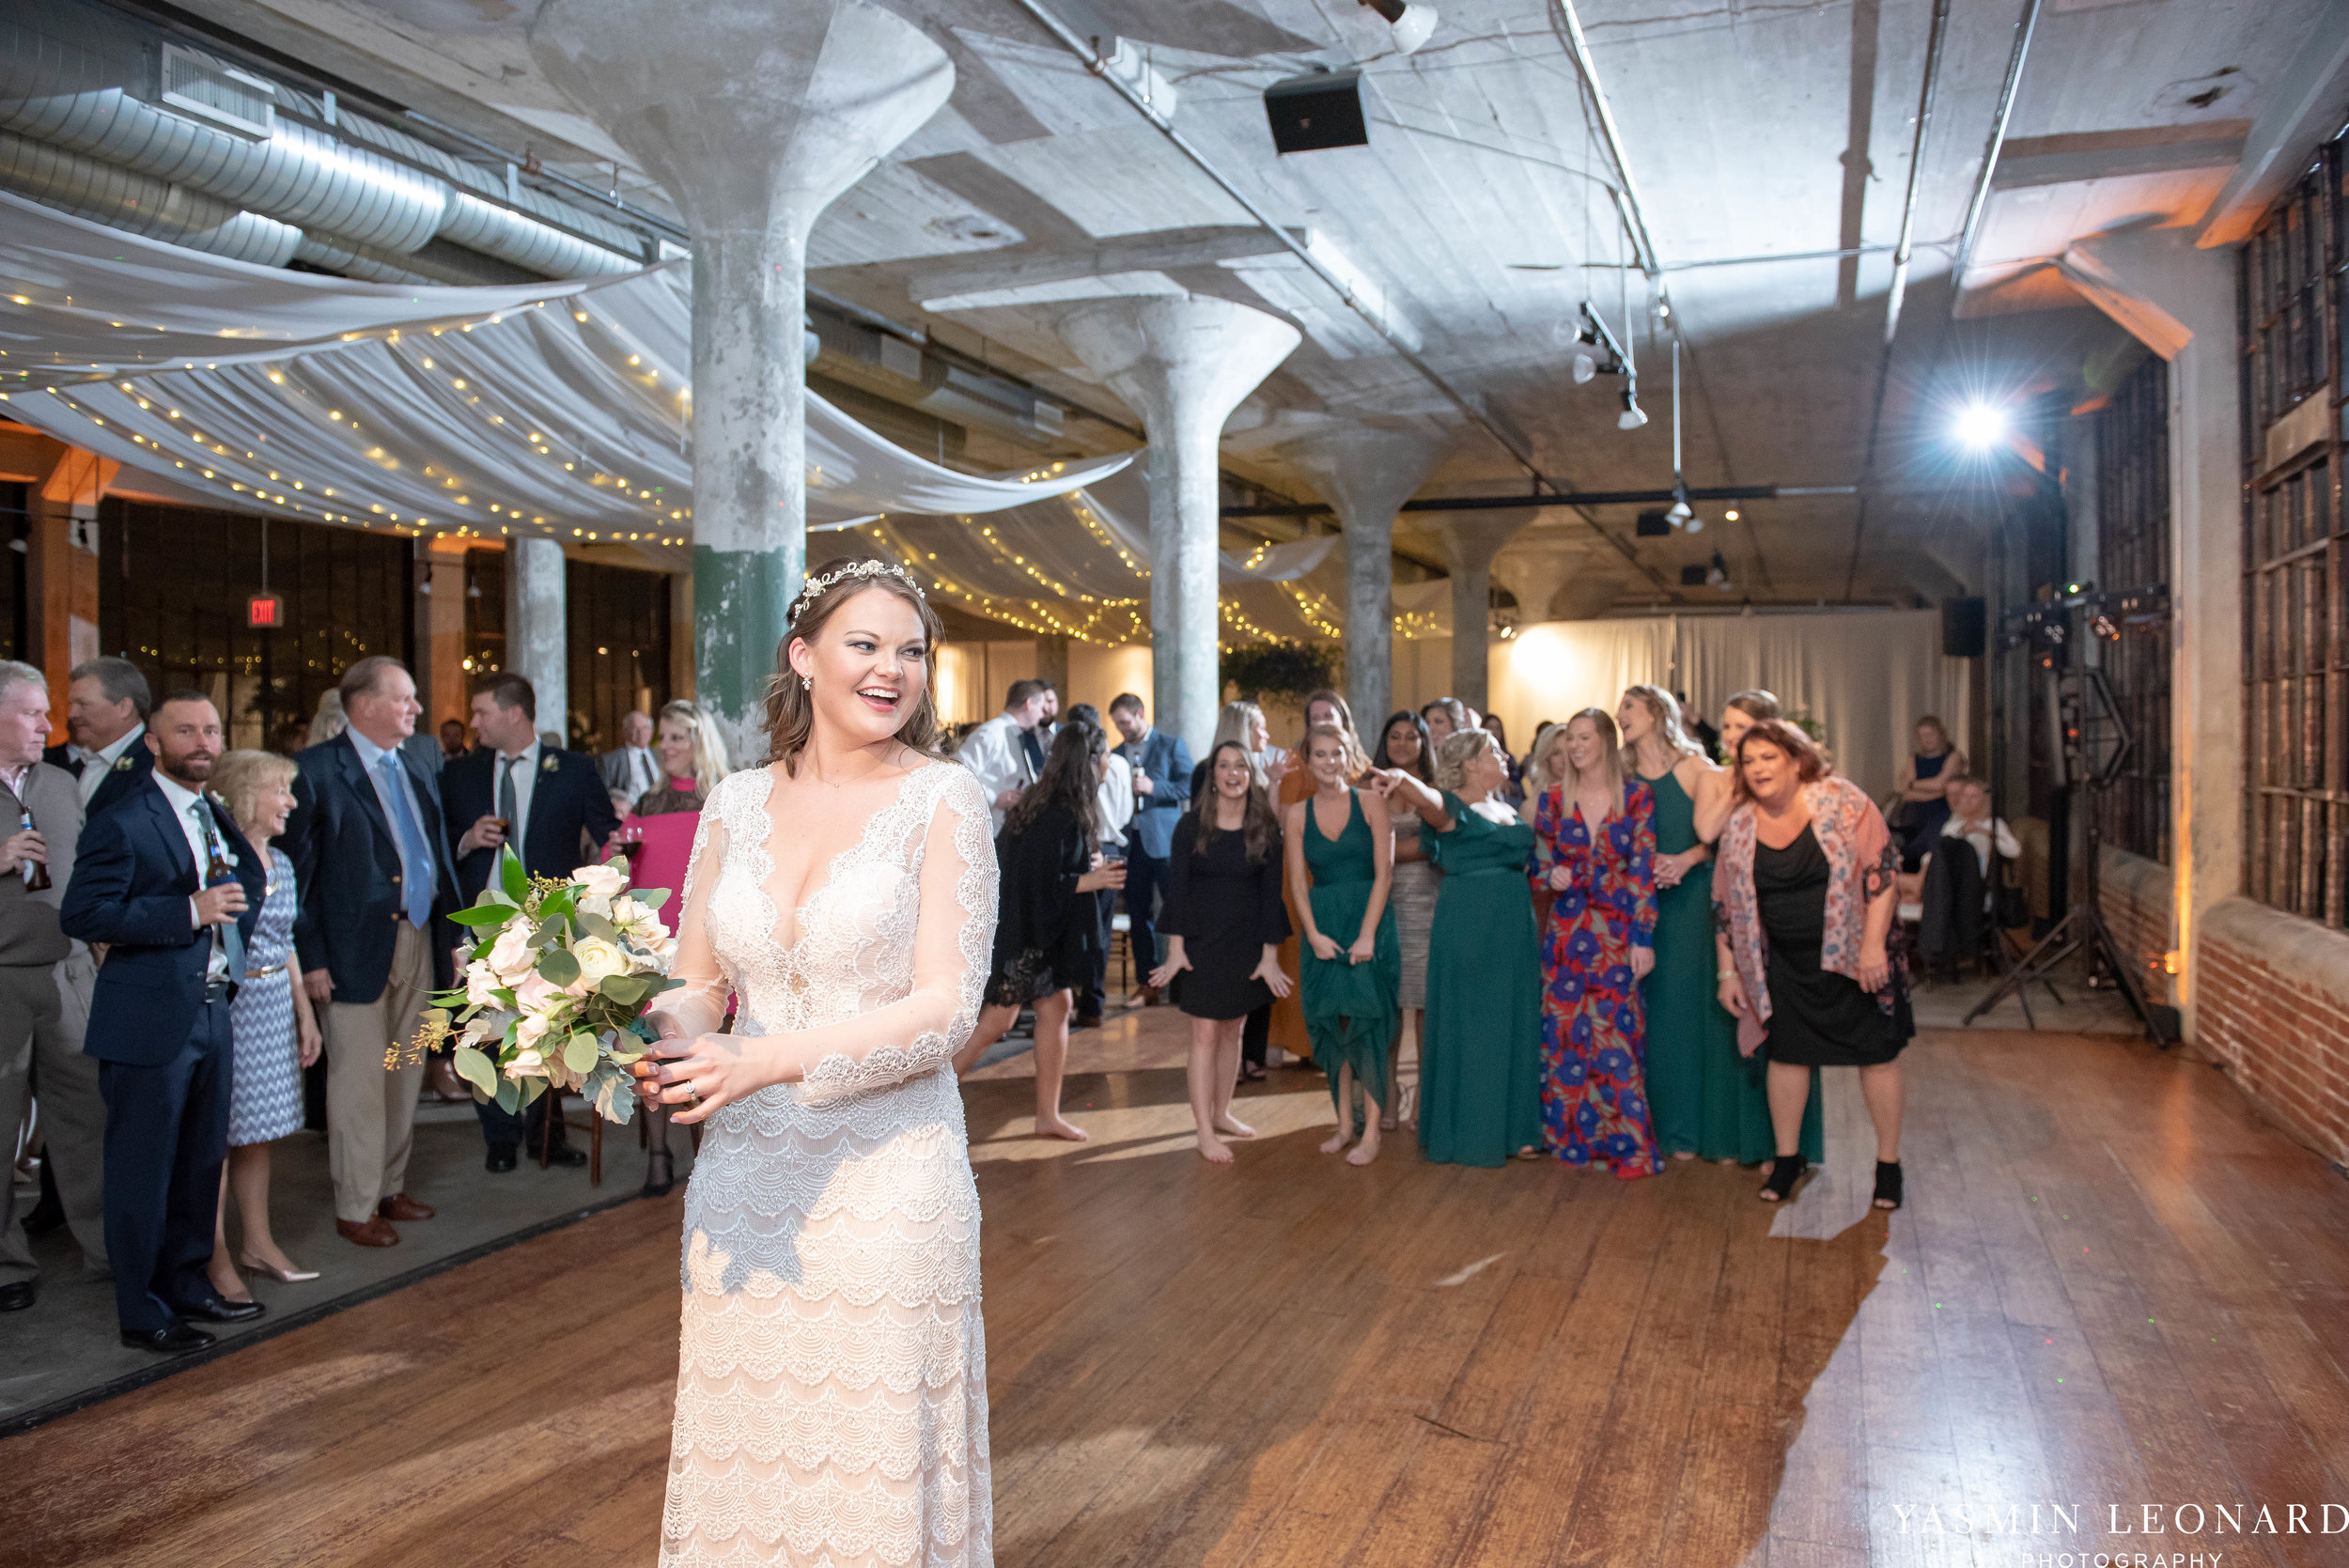 The Lofts at Union Square - Unions - High Point Weddings - NC Weddings - NC Wedding Photographer - Yasmin Leonard Photography - Just Priceless - Green Pink and Gold Wedding - Elegant Wedding-50.jpg